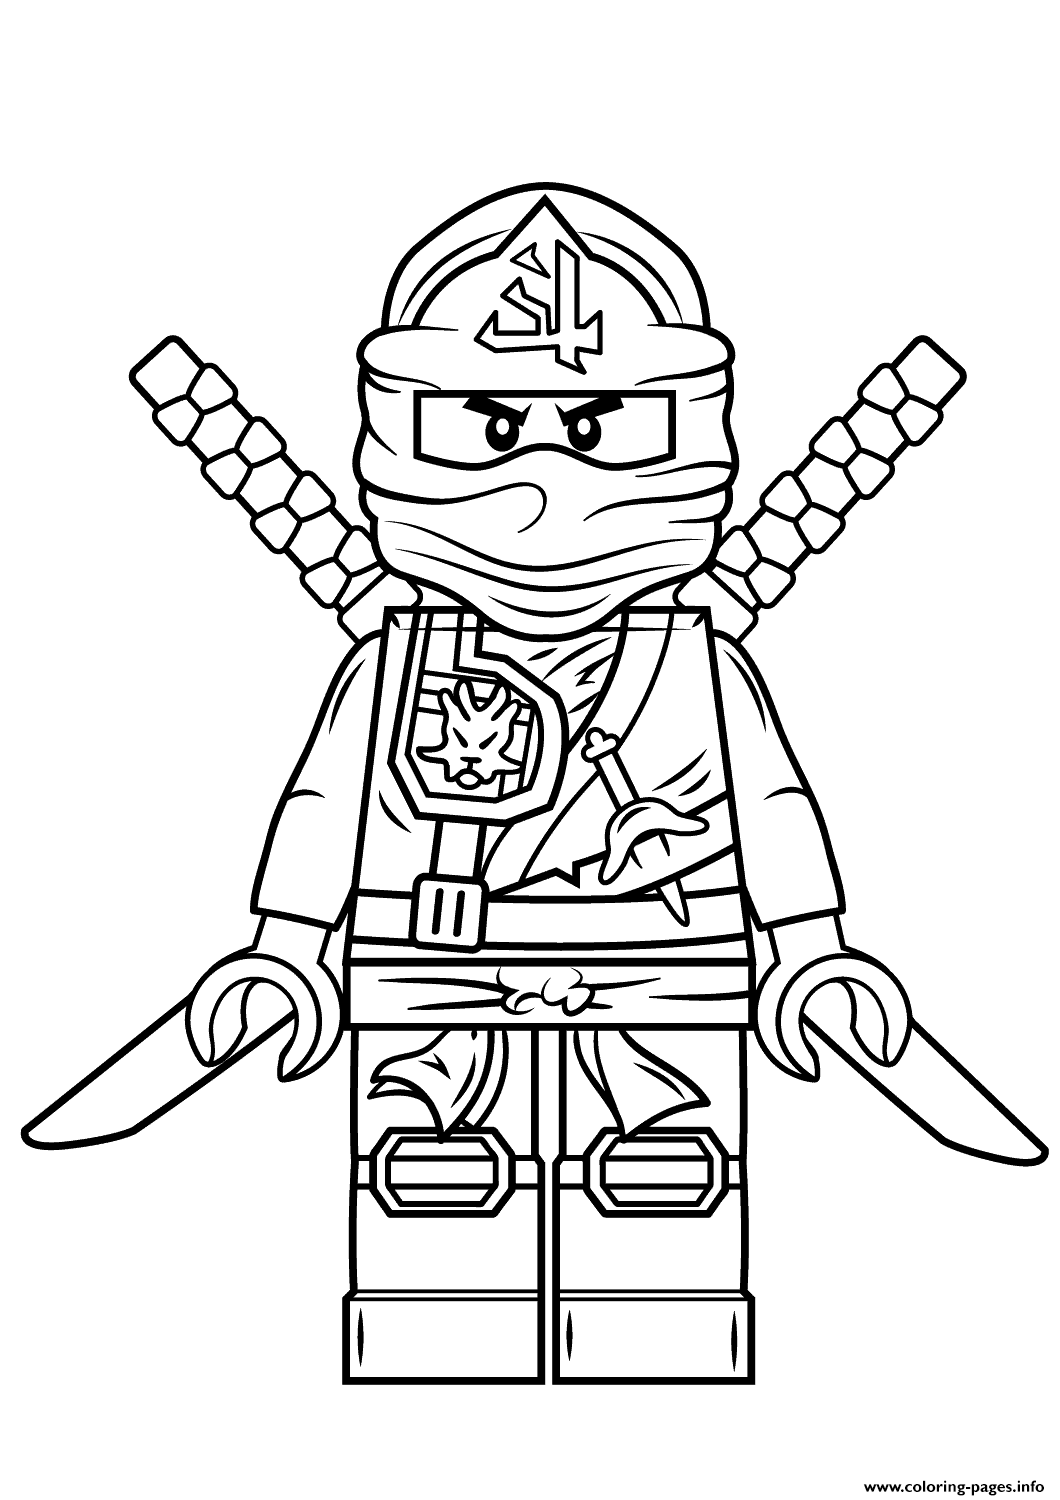 Ninjago coloring pages to color online - Lego Ninjago Green Ninja Coloring Pages Printable And Coloring Book To Print For Free Find More Coloring Pages Online For Kids And Adults Of Lego Ninjago